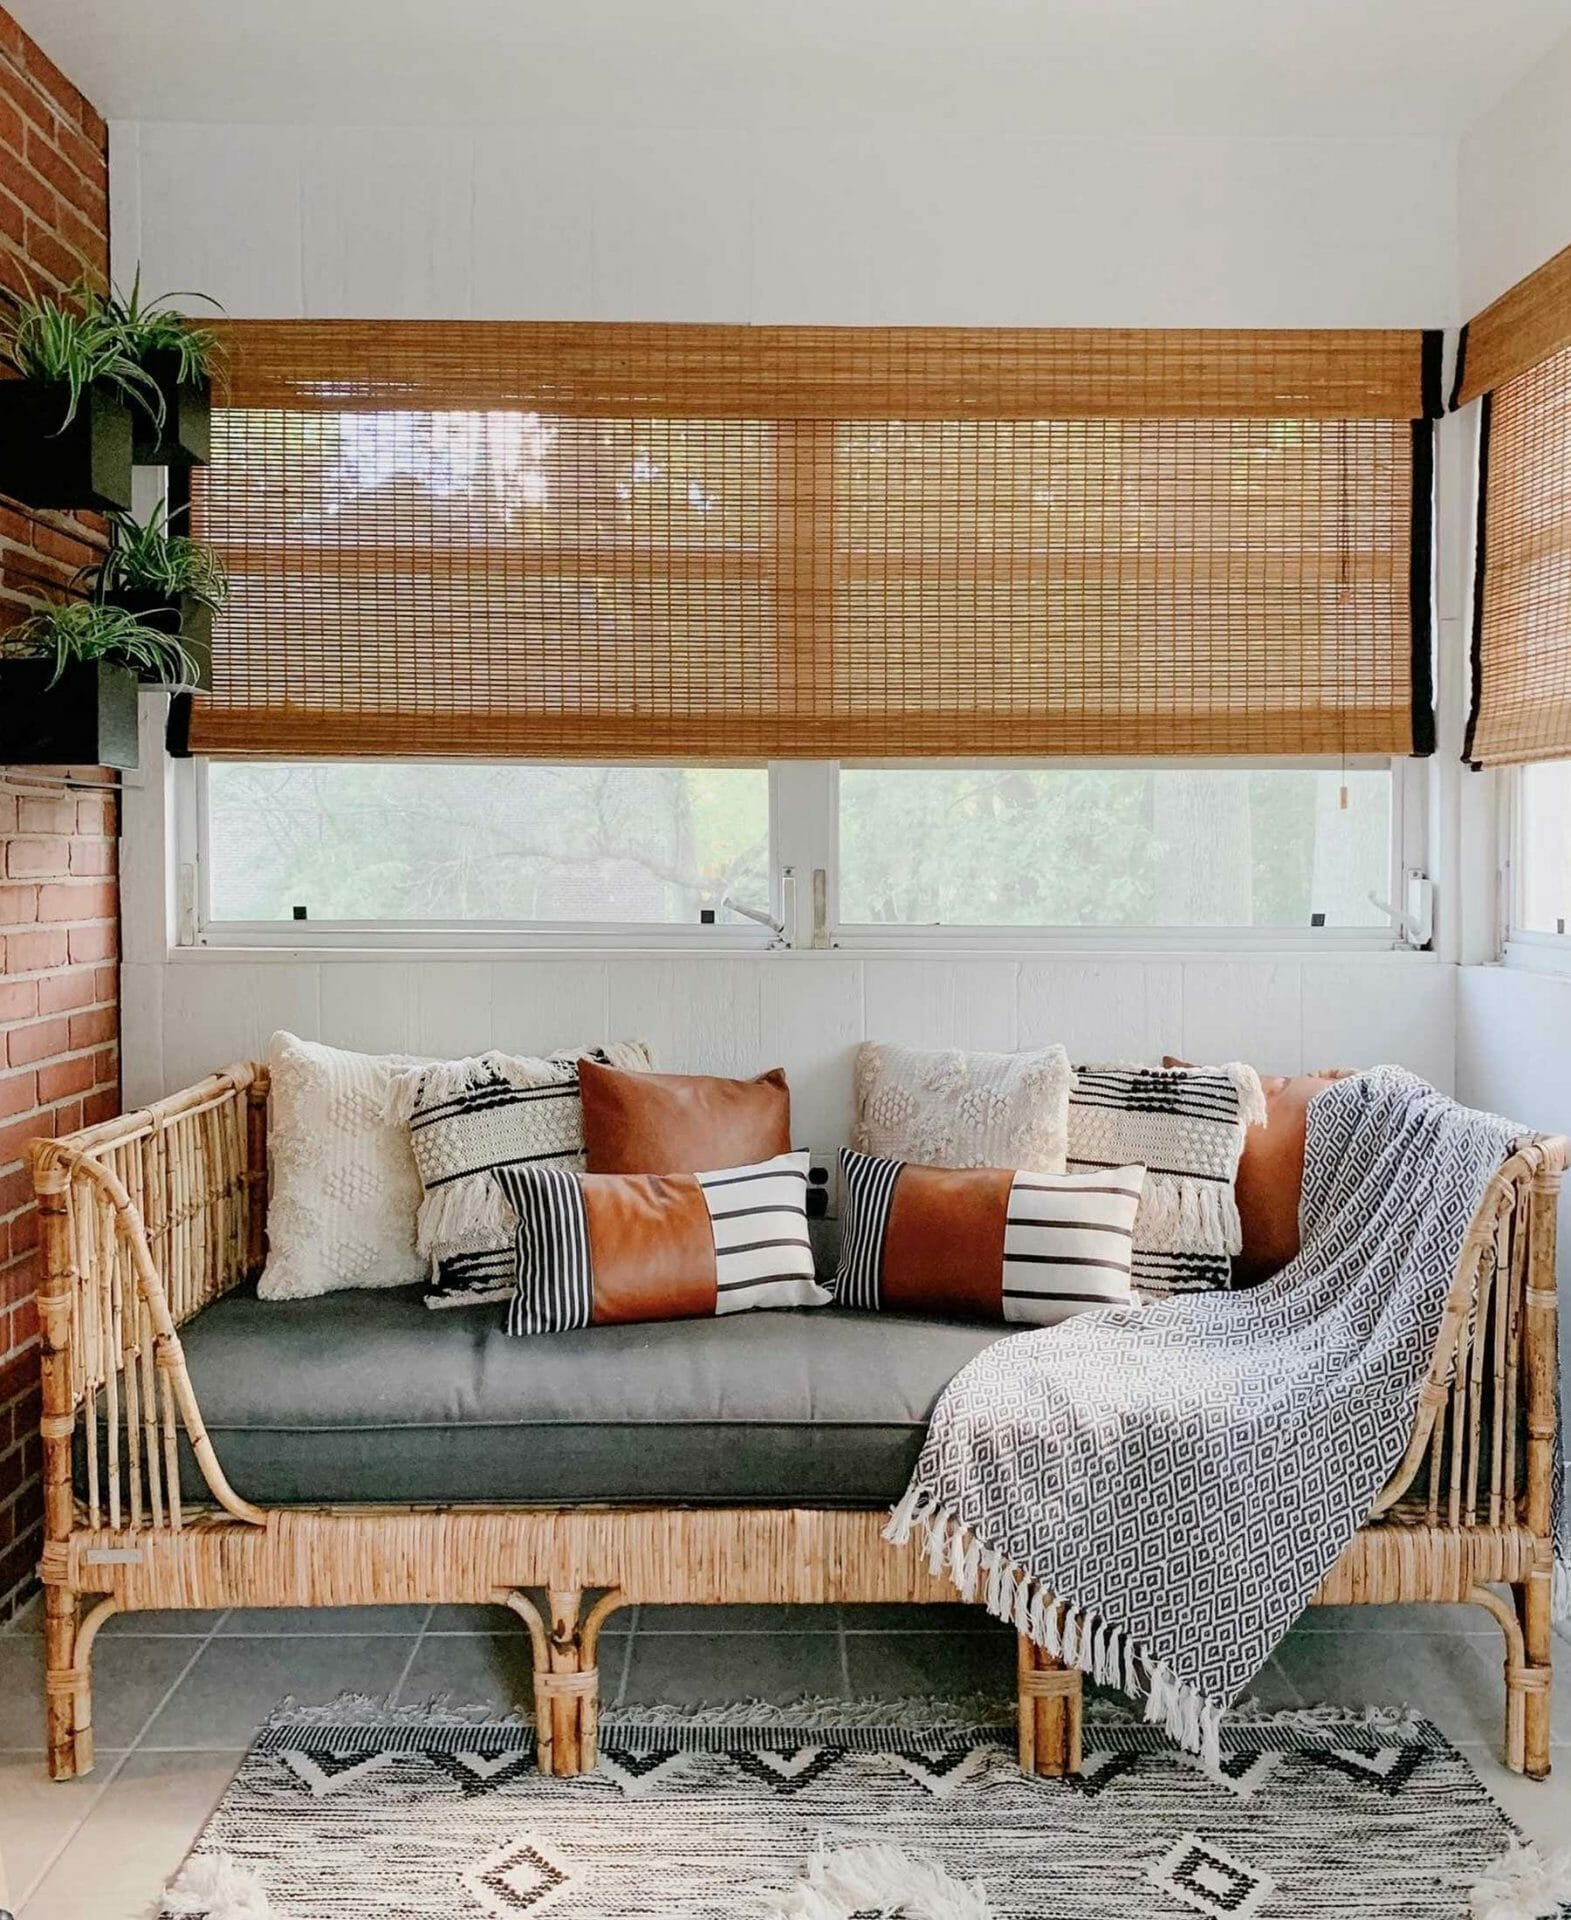 A sunroom features Article's Sol Daybed.